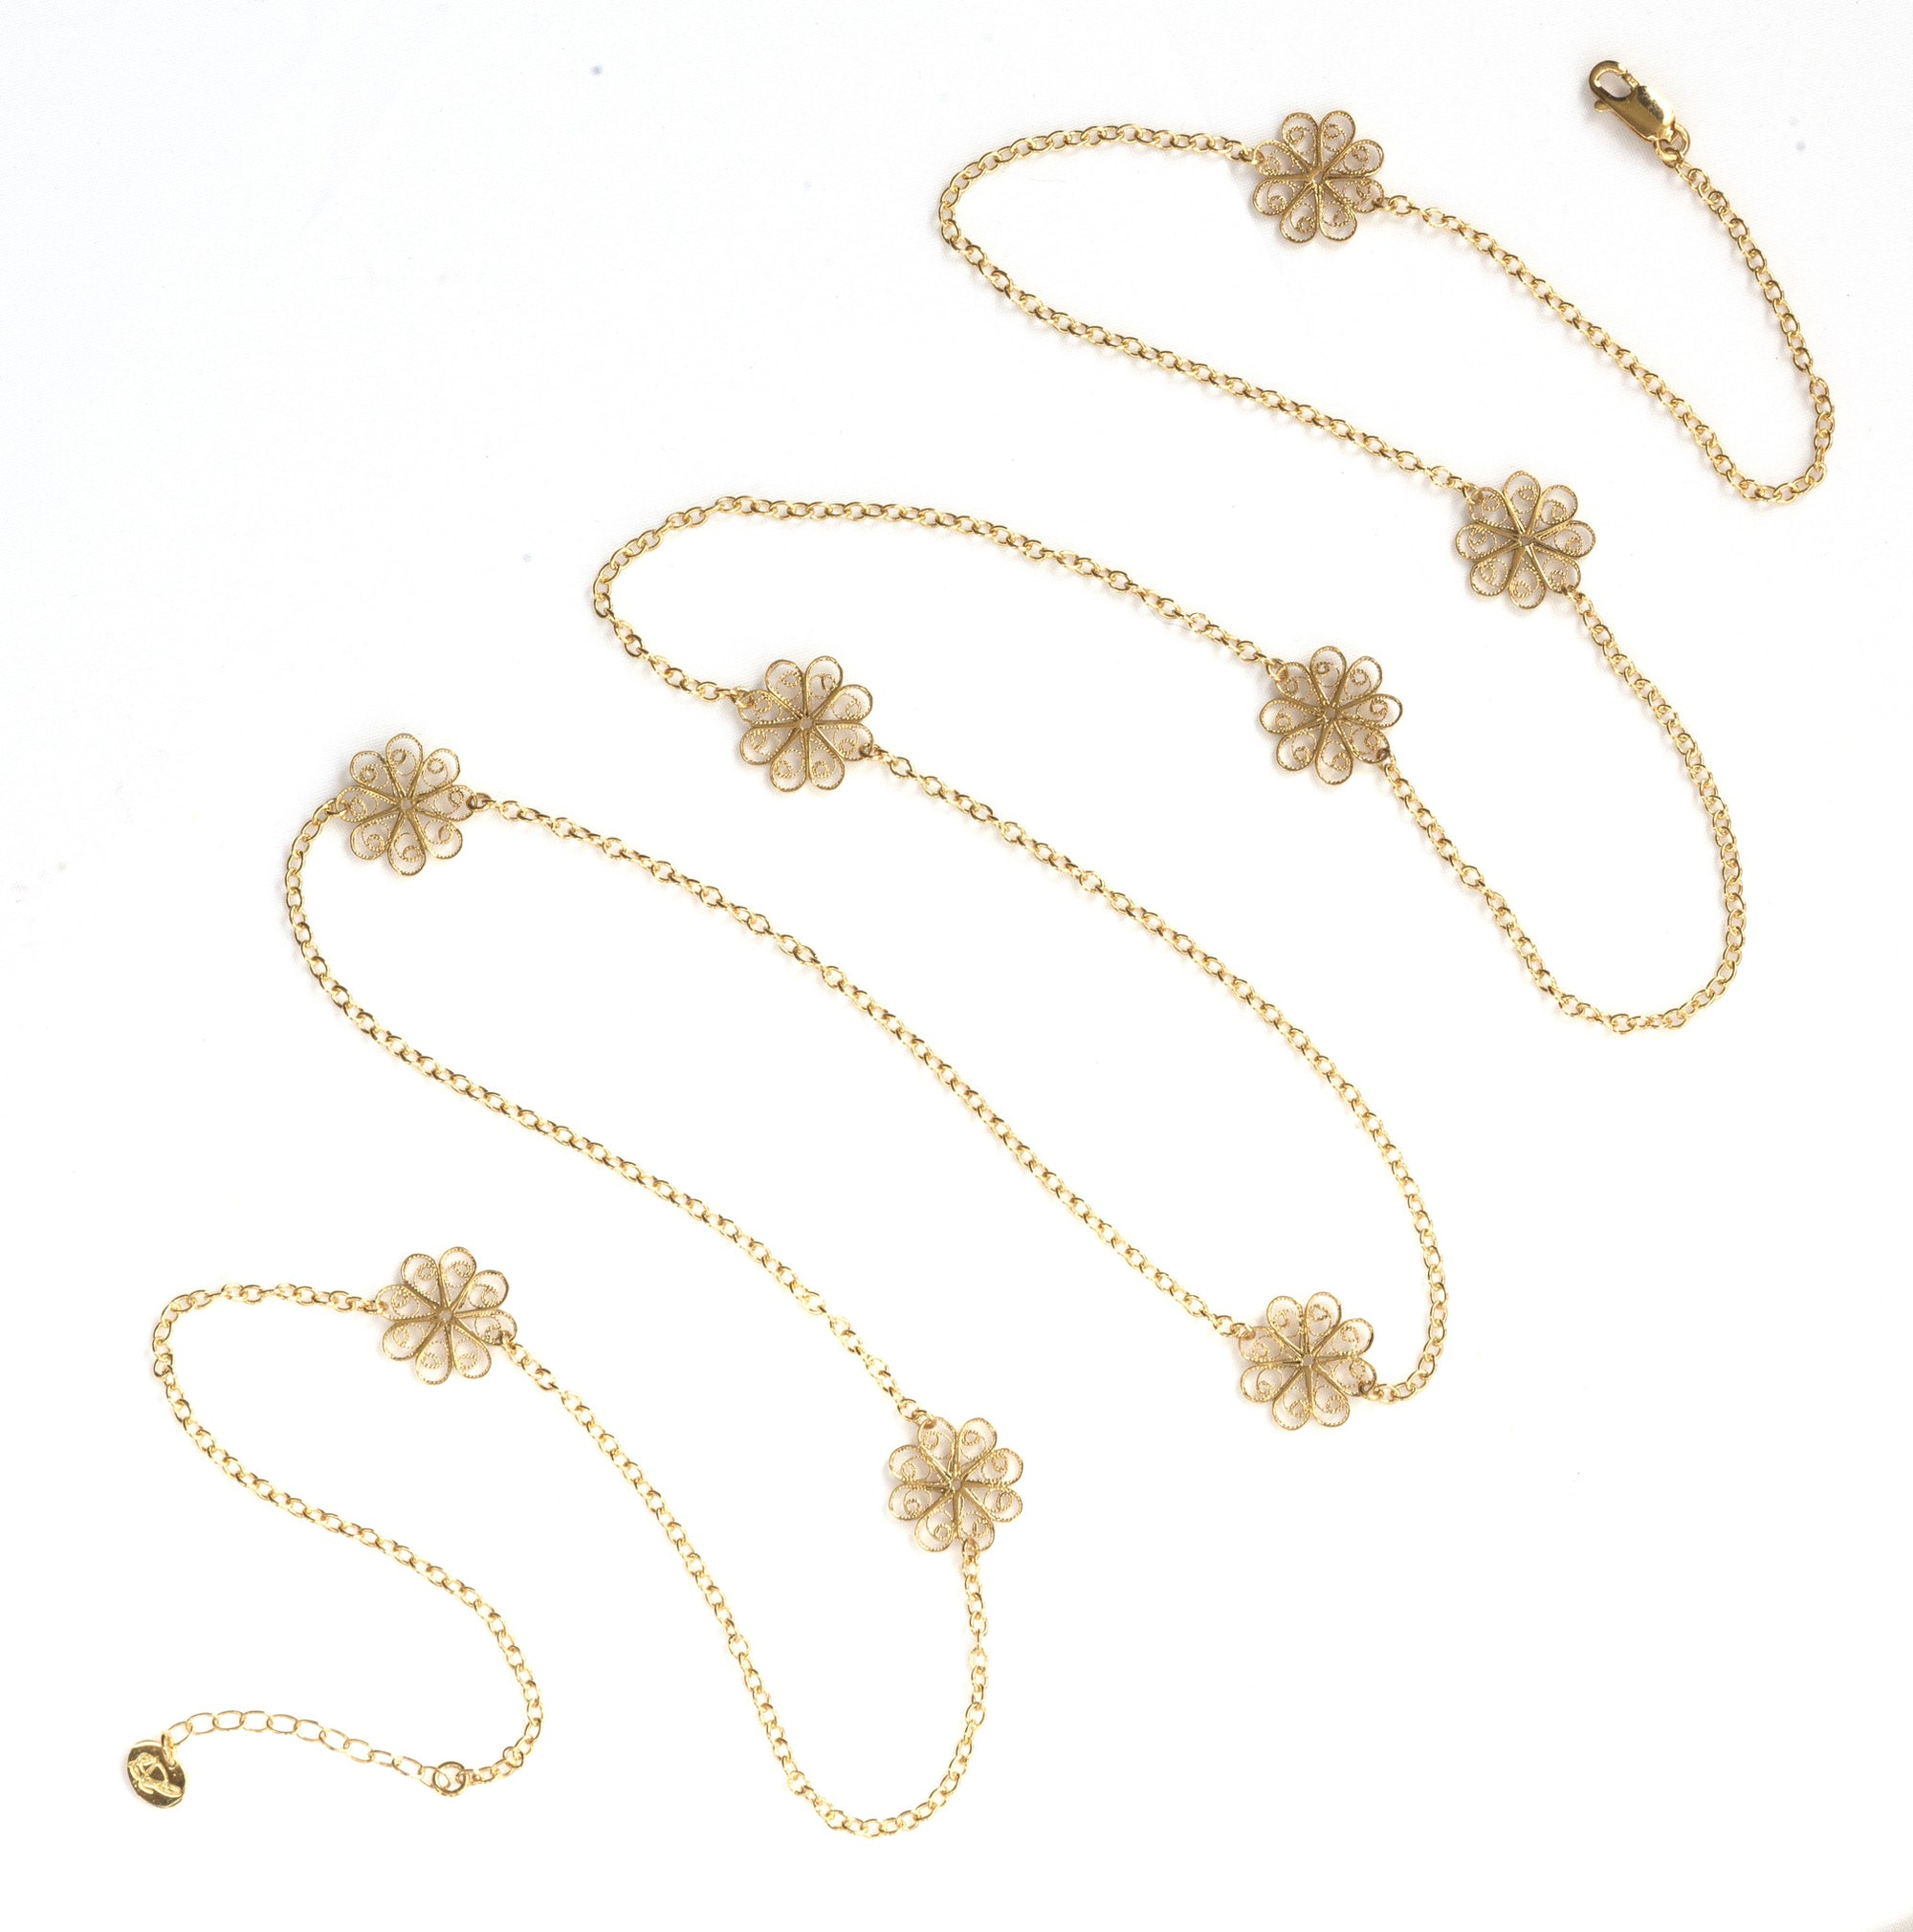 Filigree Enchanting Rosette Necklace in Yellow Gold